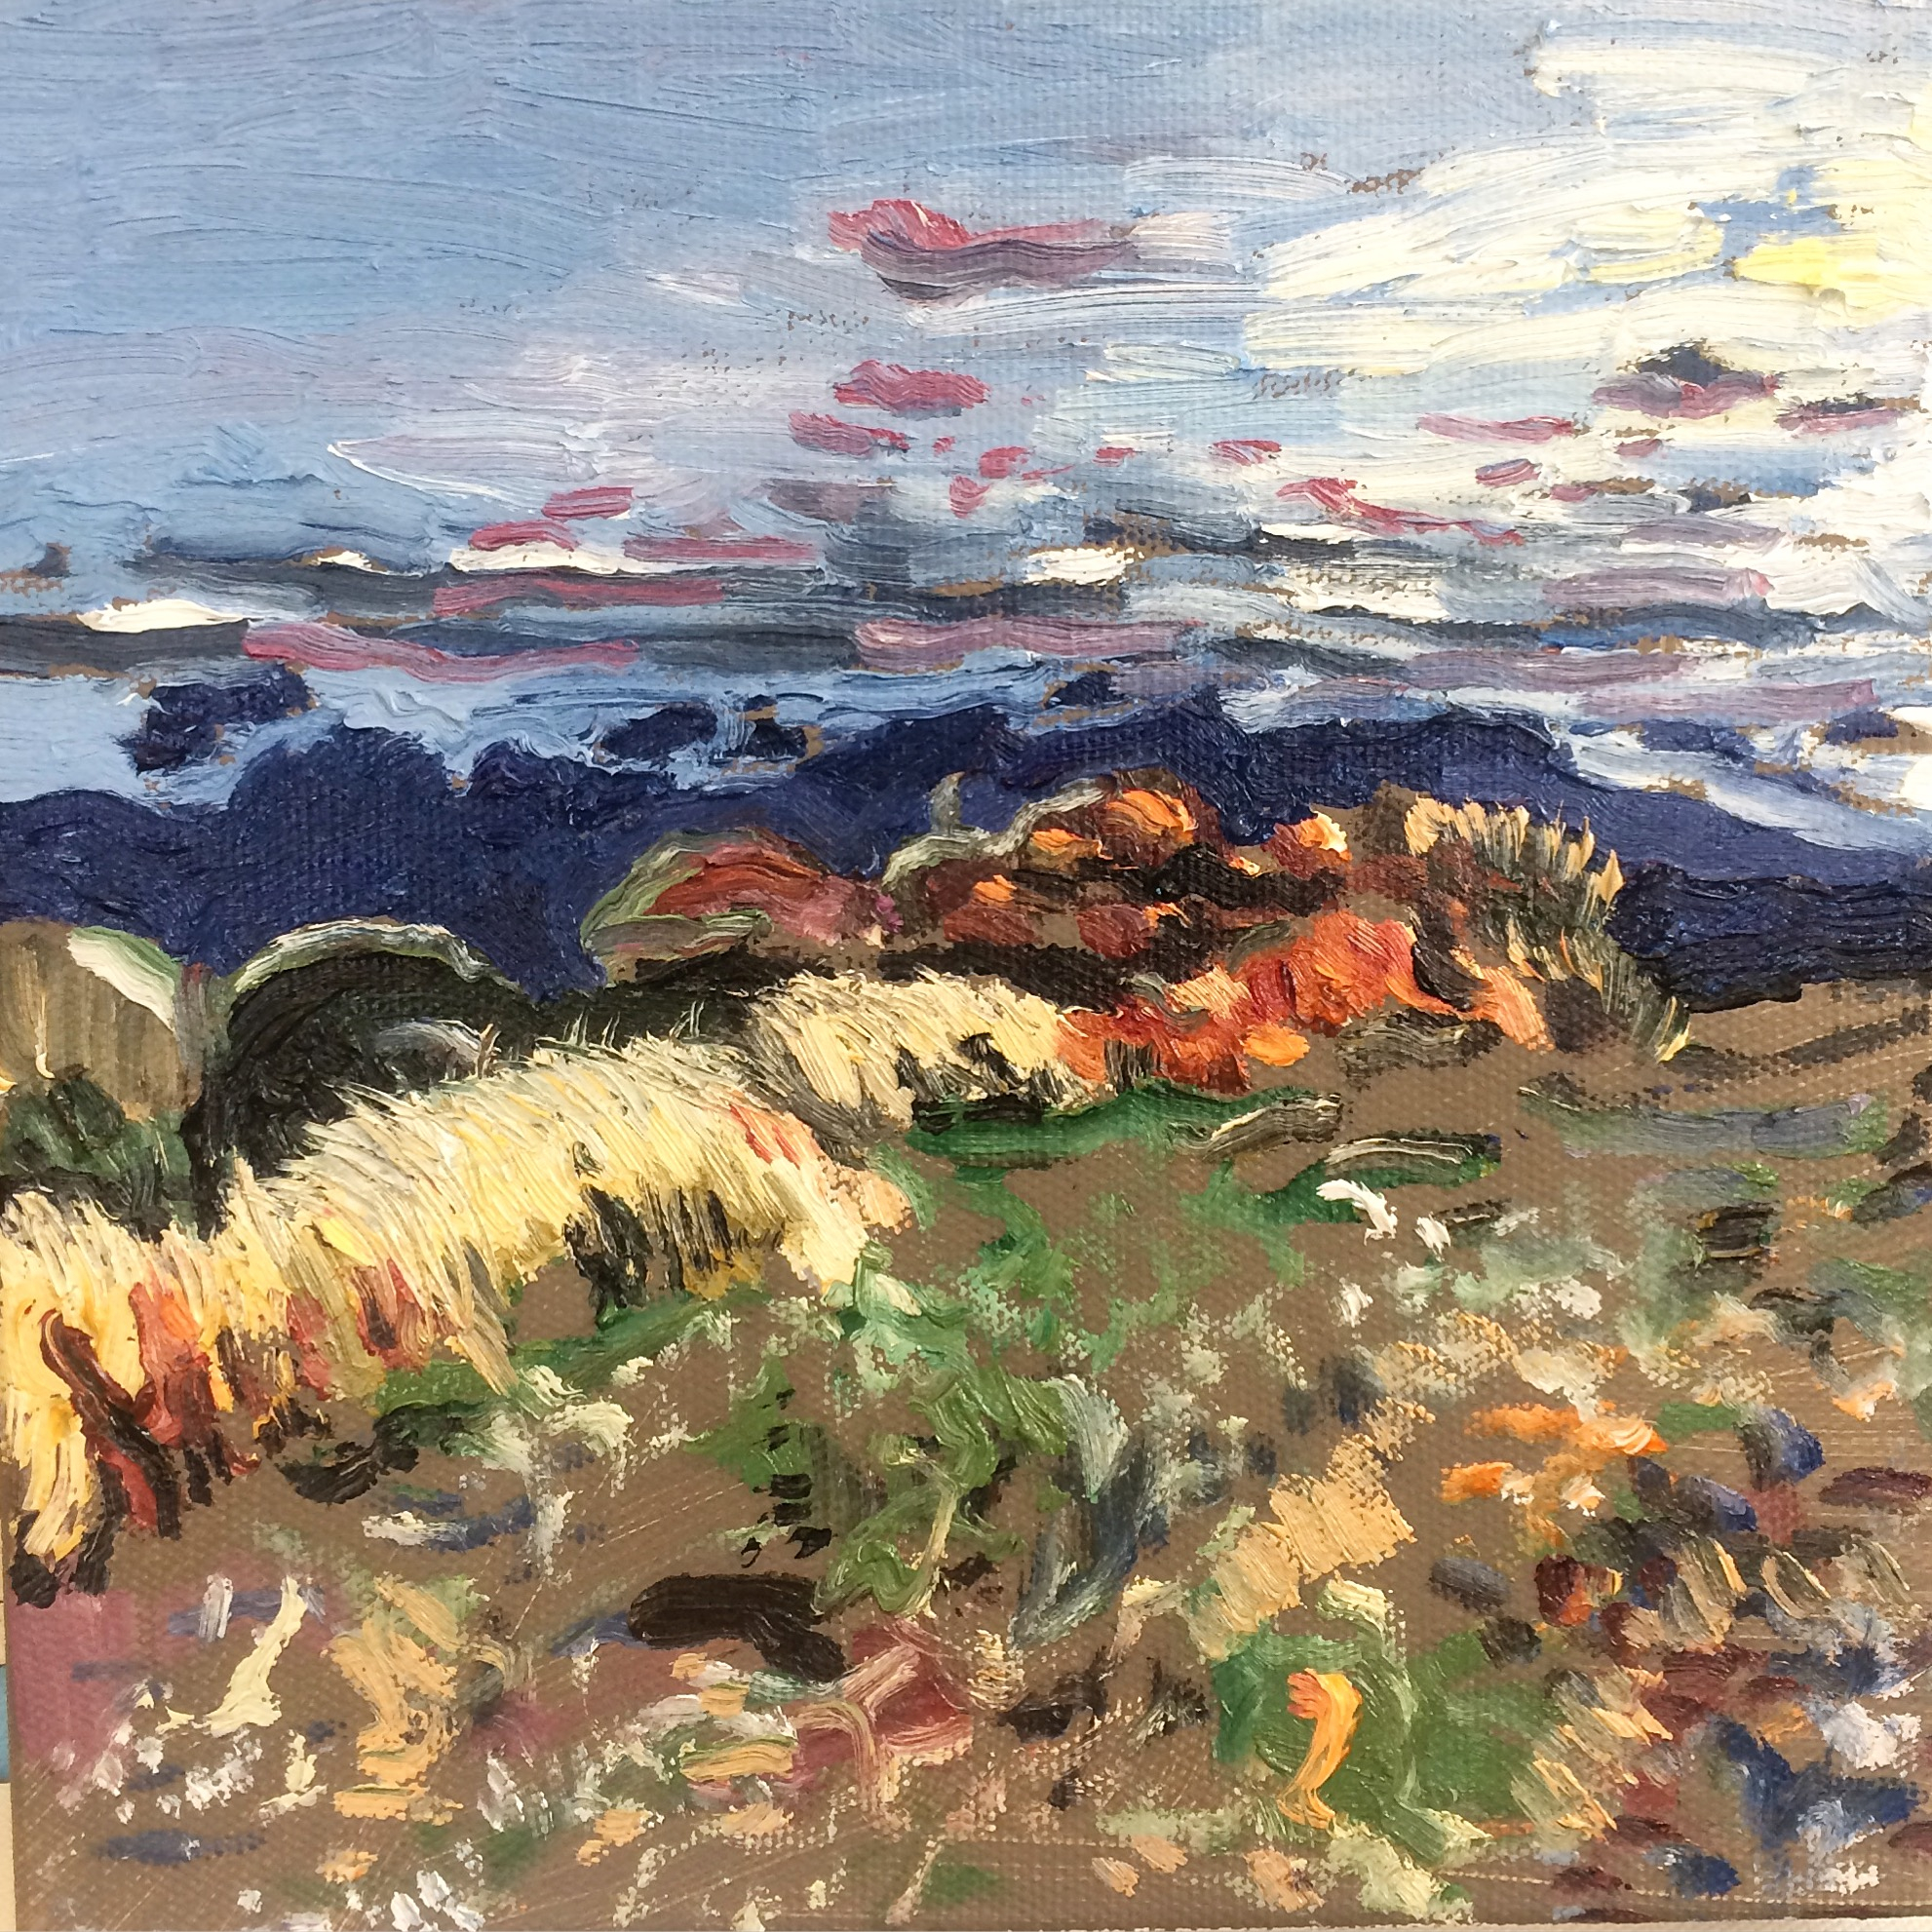 King's Tableland Sunset Study, 2016